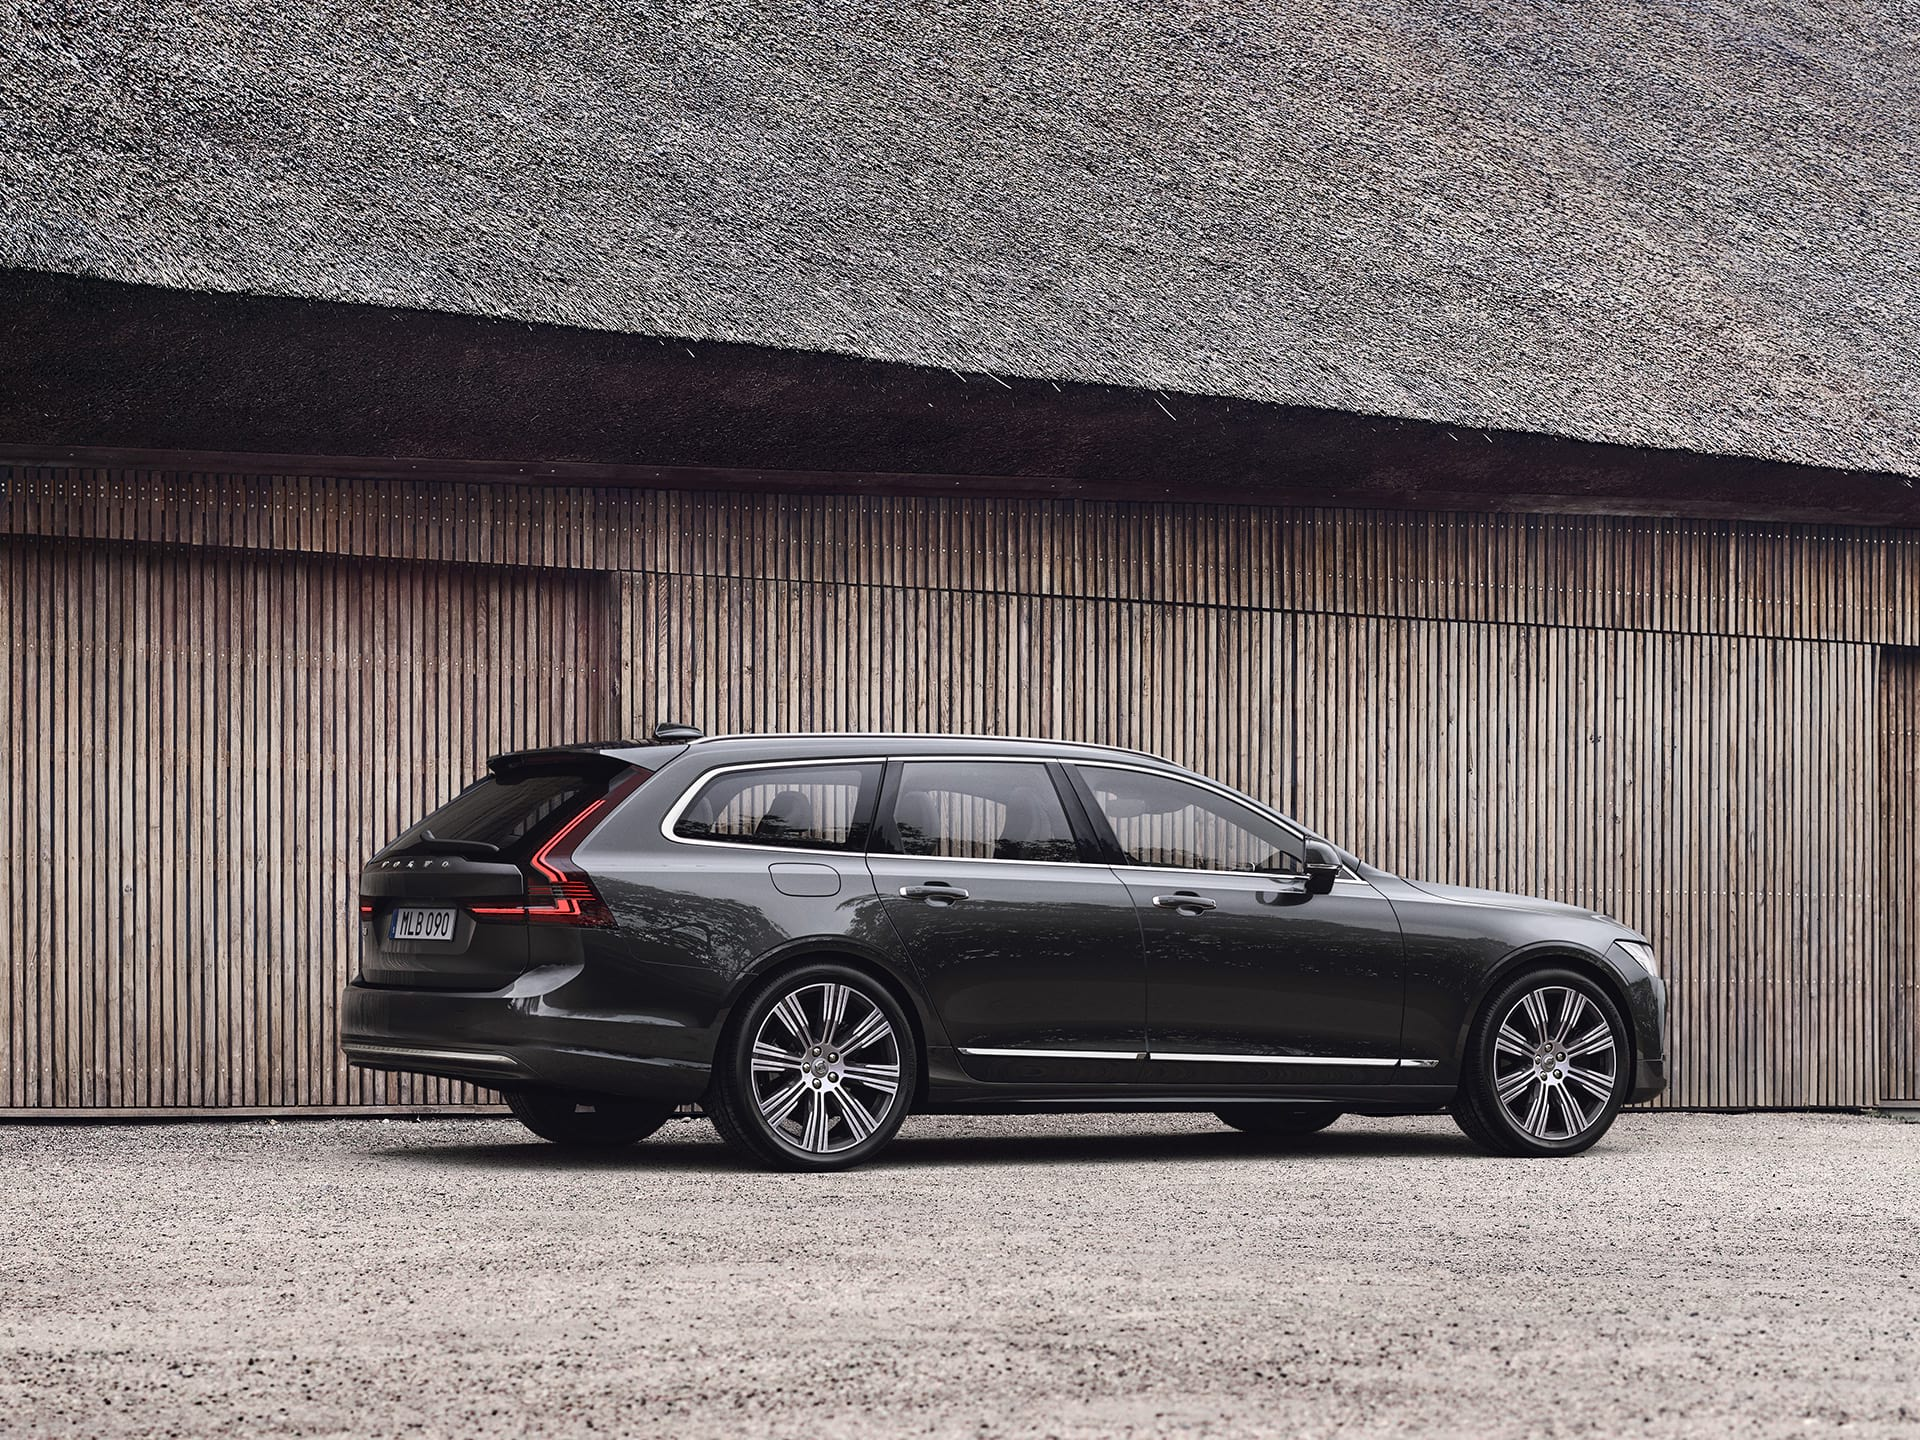 A Volvo V90, parked outside against a wooden wall.